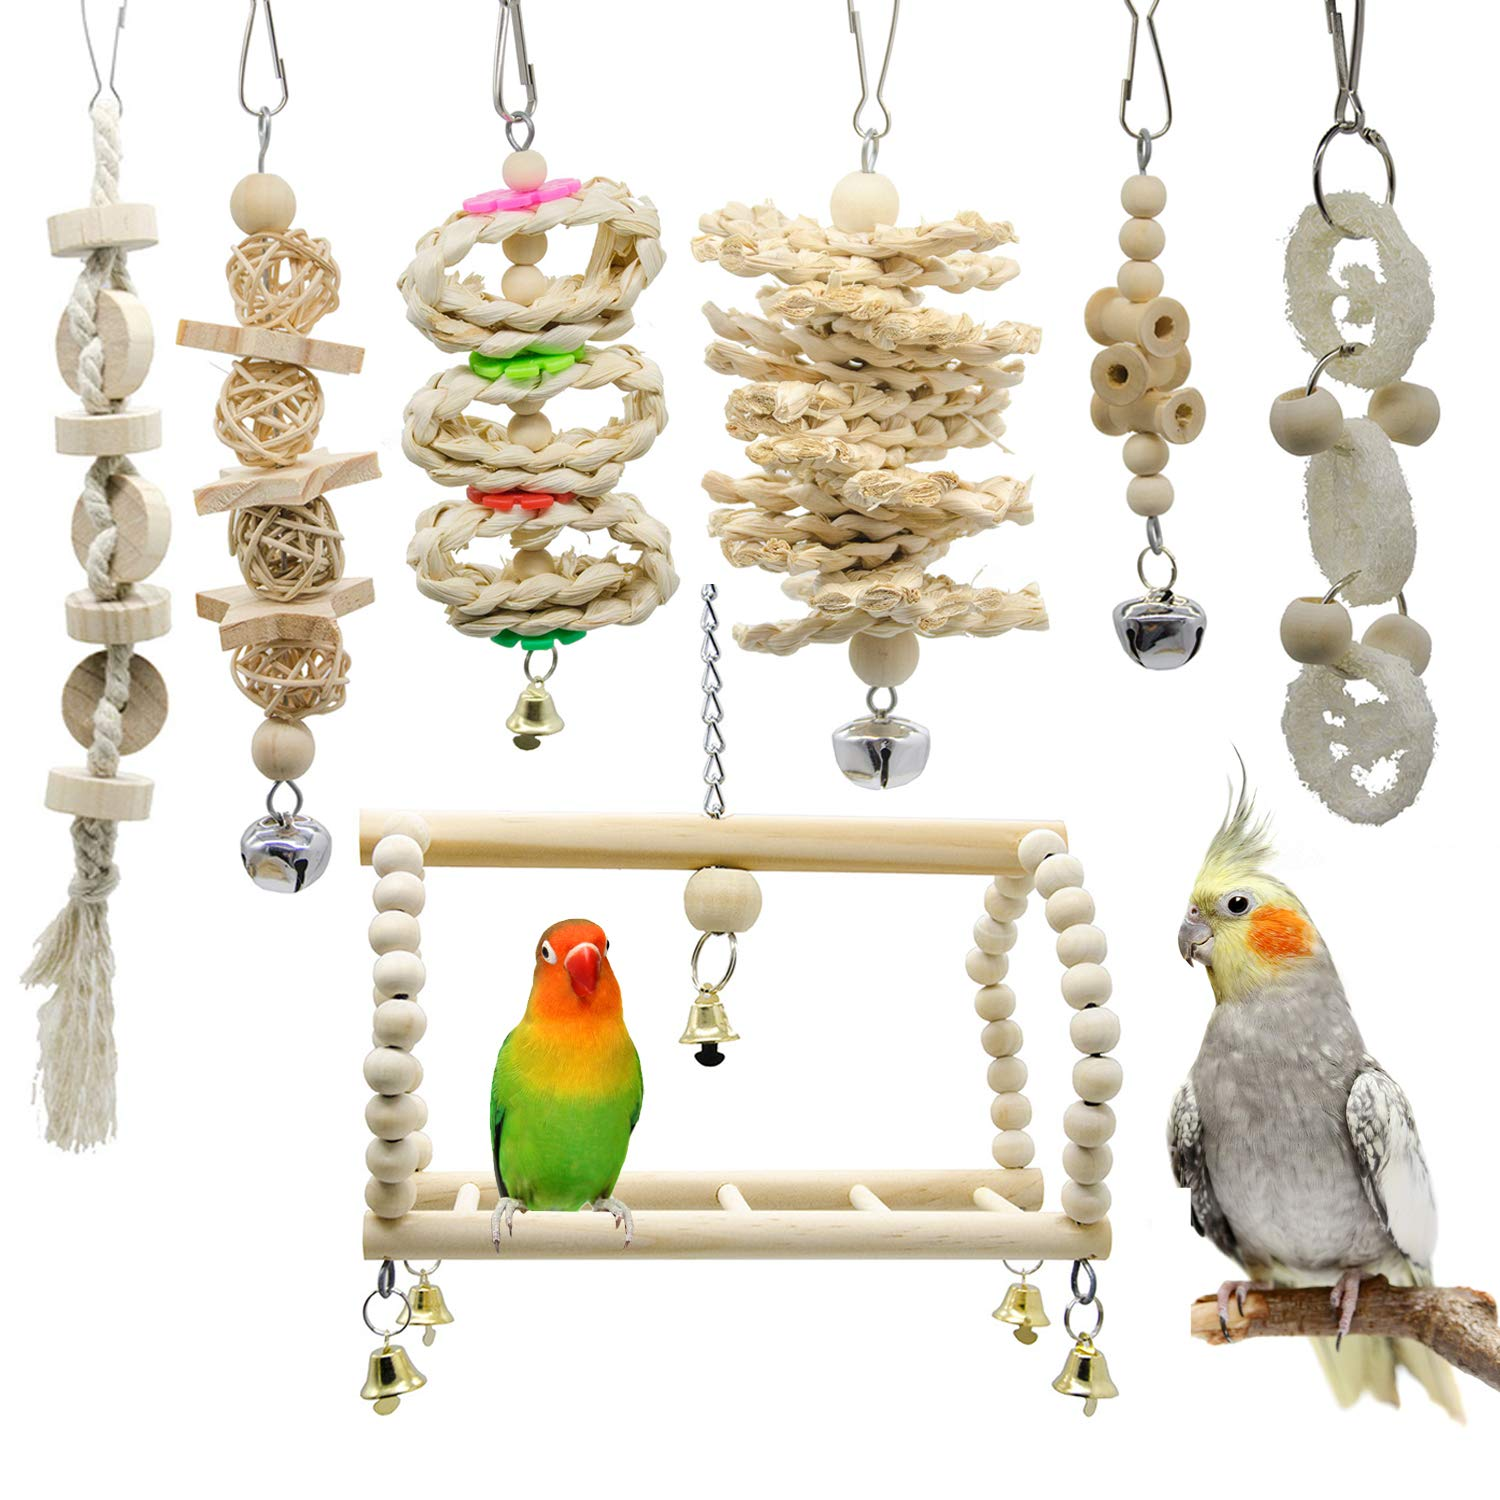 Deloky 7 Packs Bird Parrot Swing Chewing Toys-Hanging Bell Bird Cage Toys Suitable for Small Parakeets, Cockatiels…